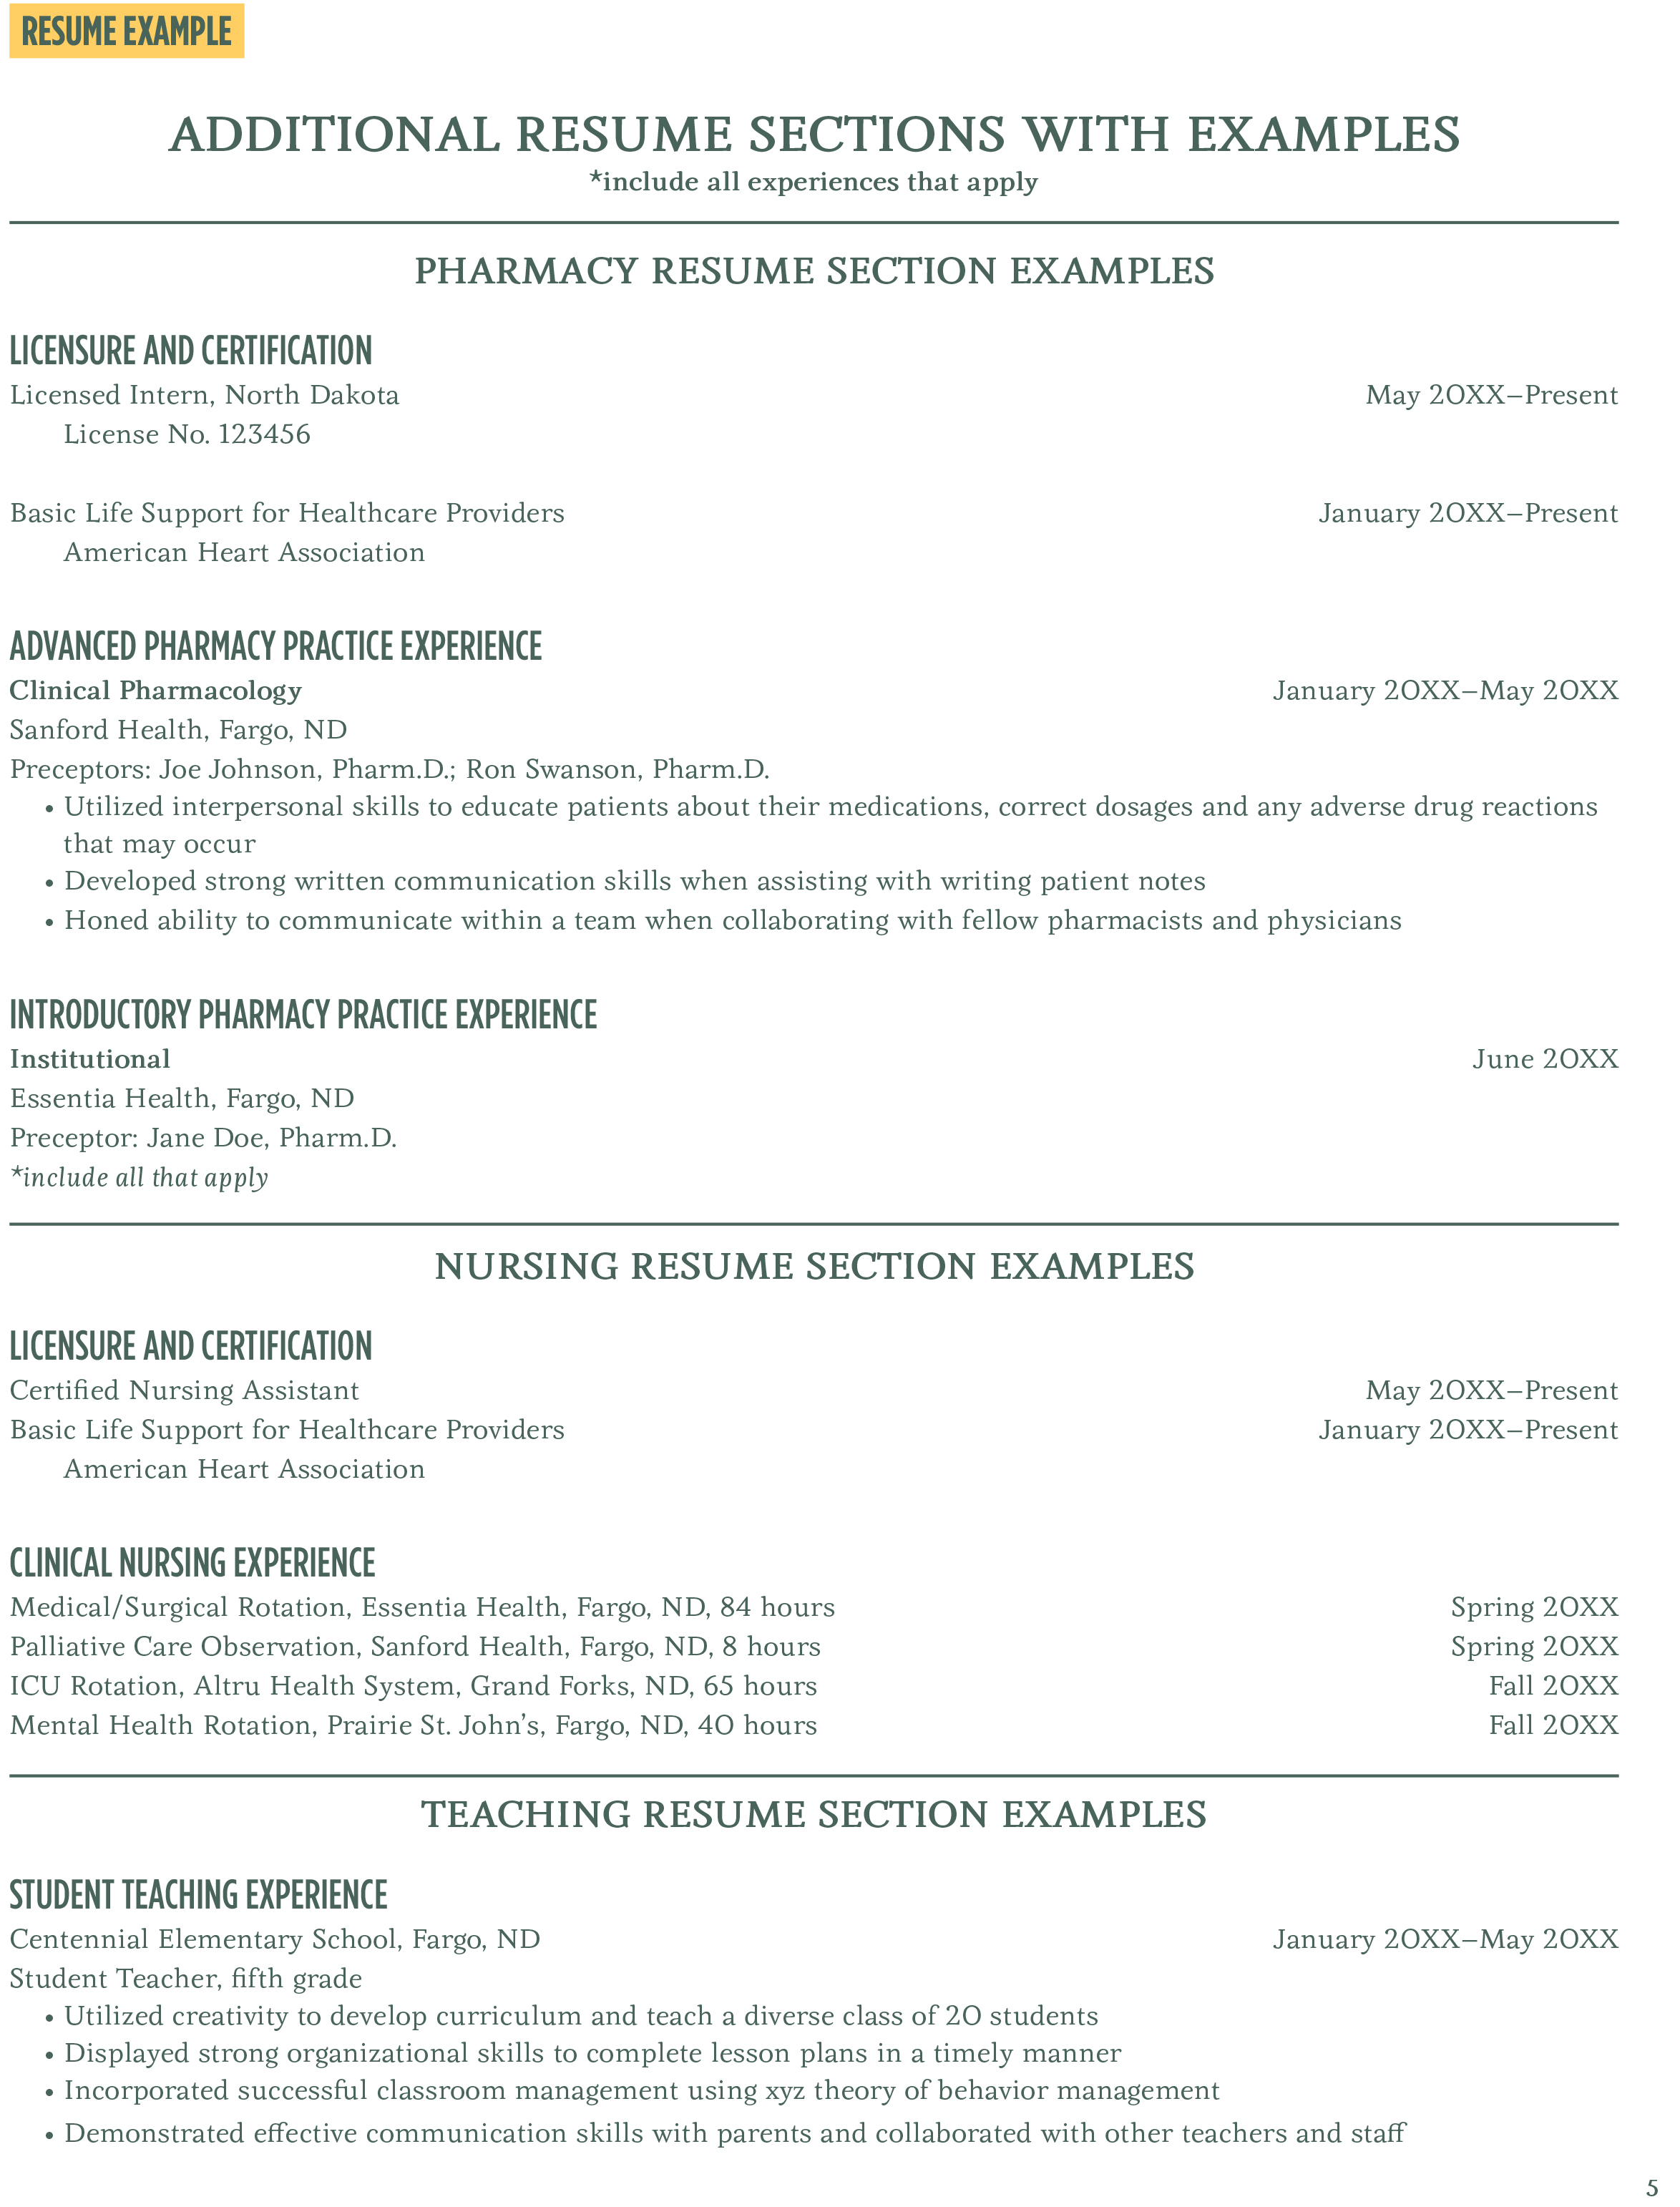 Additional Resume Sections With Examples U2013 Career Center U2013 North Dakota  State University  Resume Sections